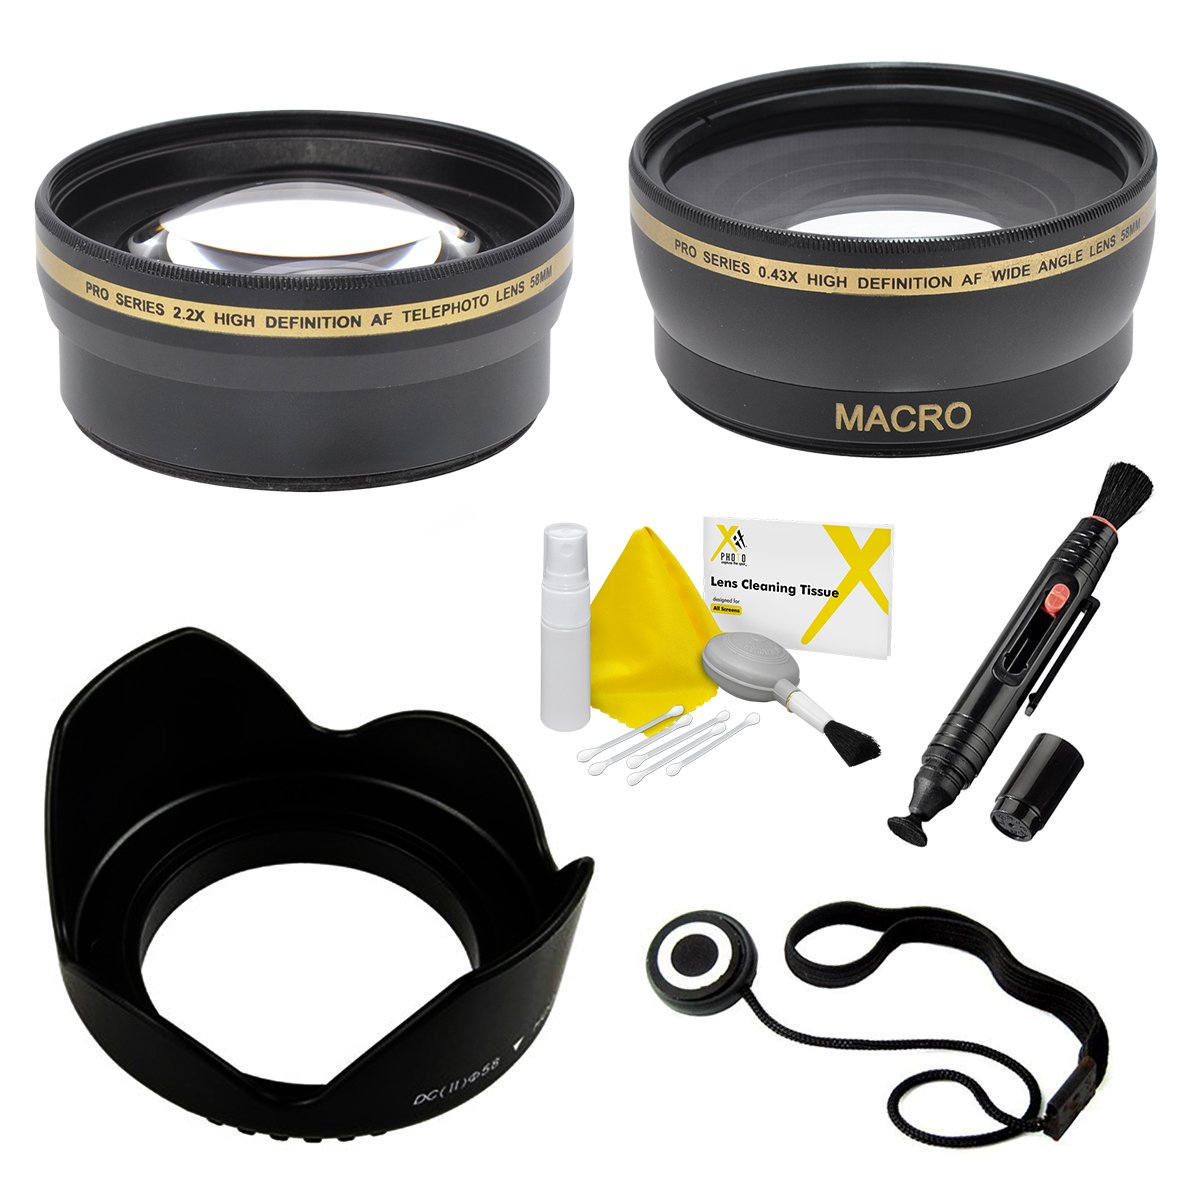 58mm Essential Lens Kit for Select Sony Cybershot Digital Cameras. Includes 2.2x Telephoto Lens, 0.43x HD Wide Angle Lens w/Macro, Flower Tulip Lens Hood. Also Includes: UltraPro Accessory Set by UltraPro